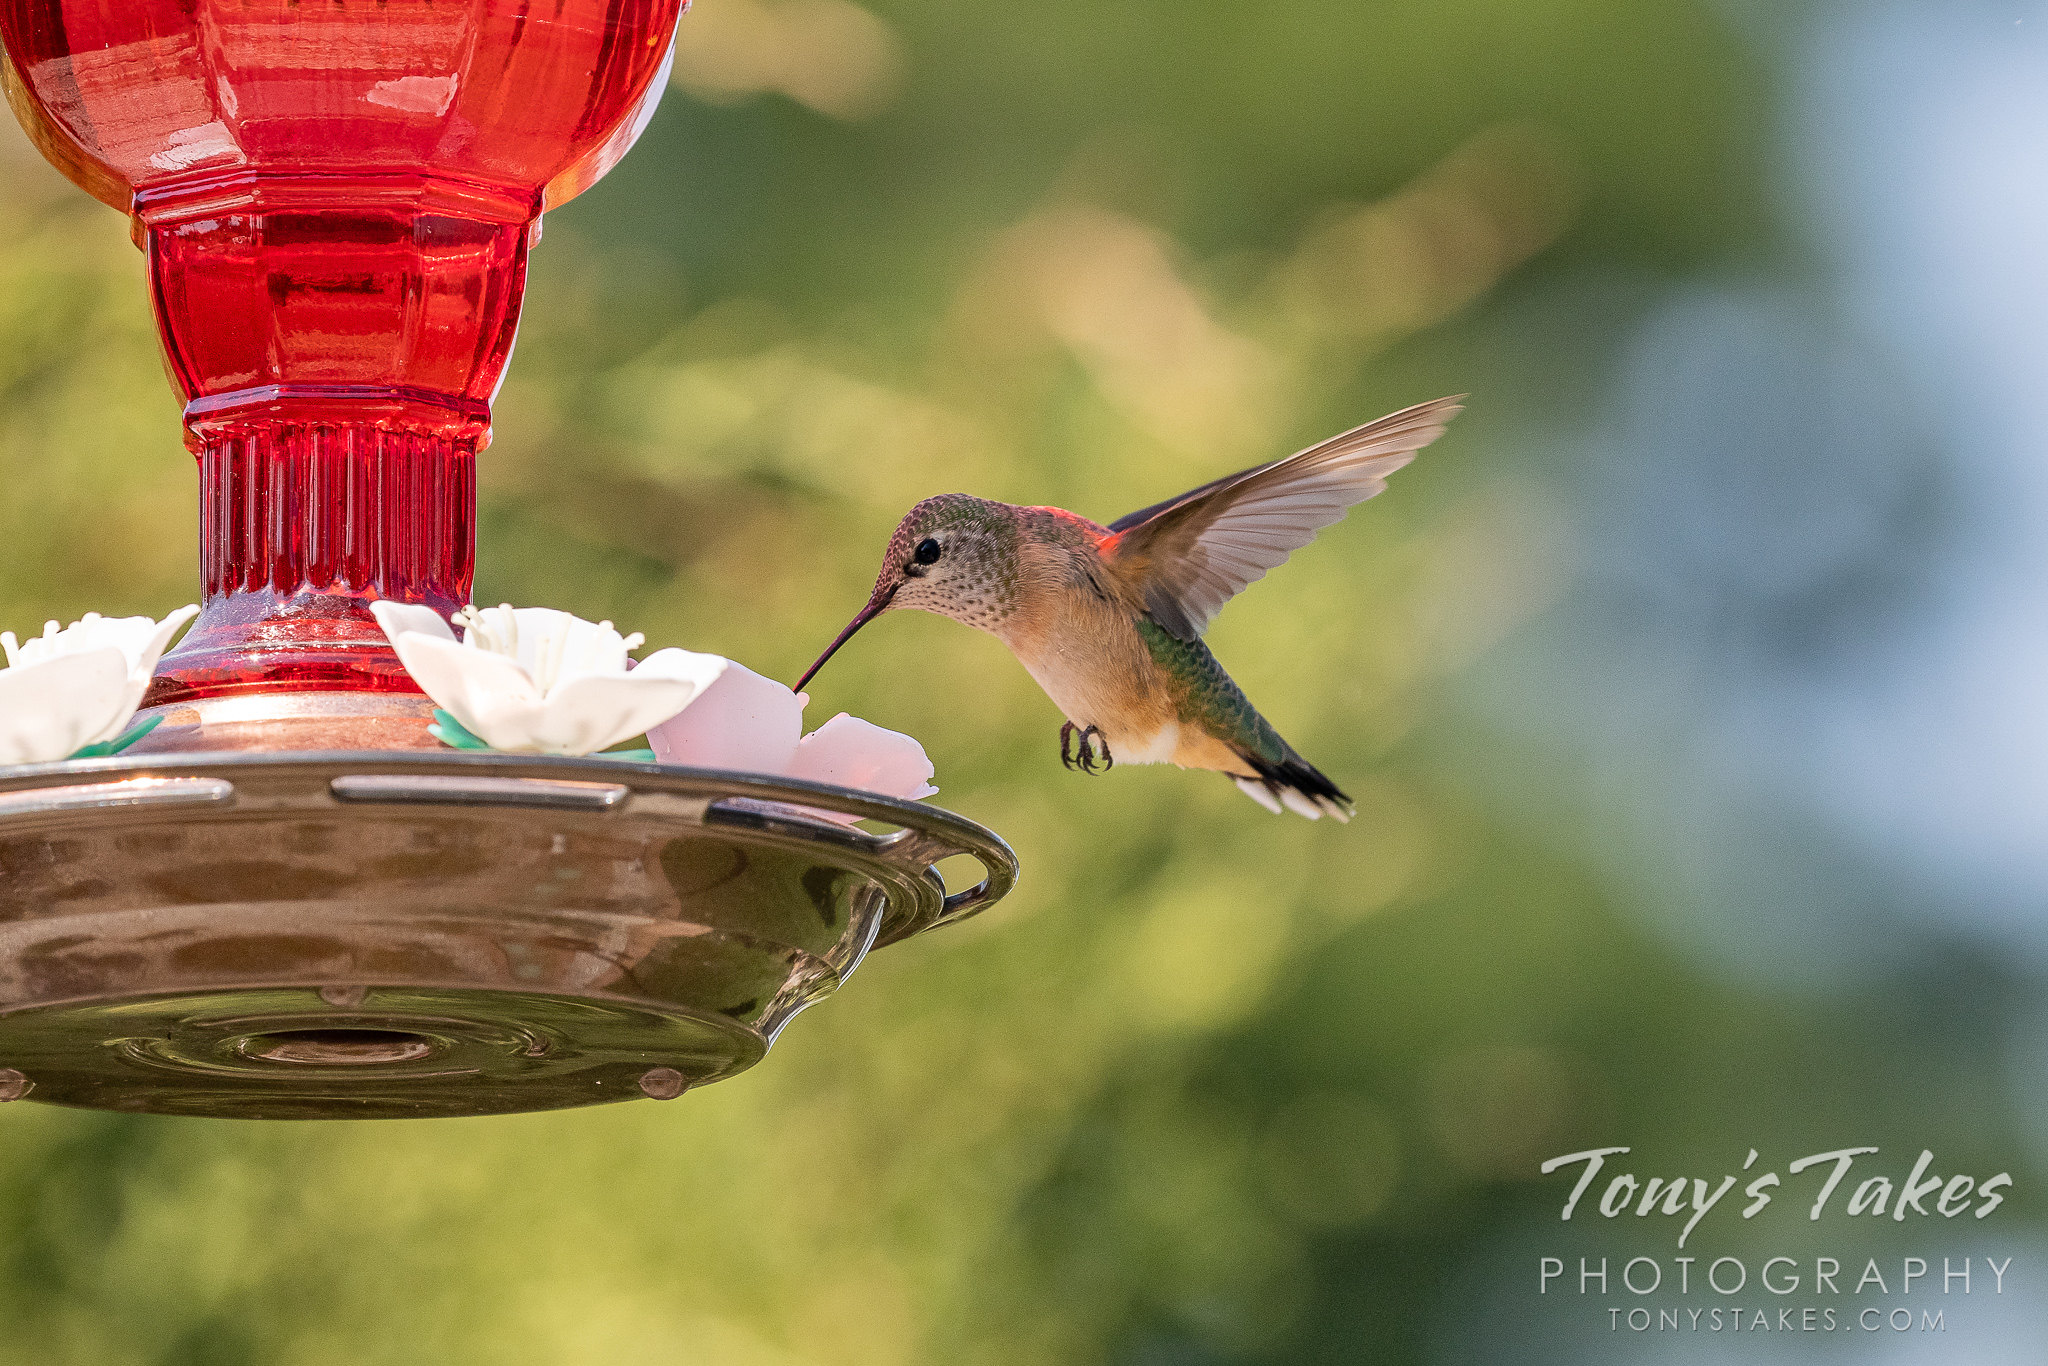 A broad-tailed hummingbird grabs a snack from a feeder. (© Tony's Takes)